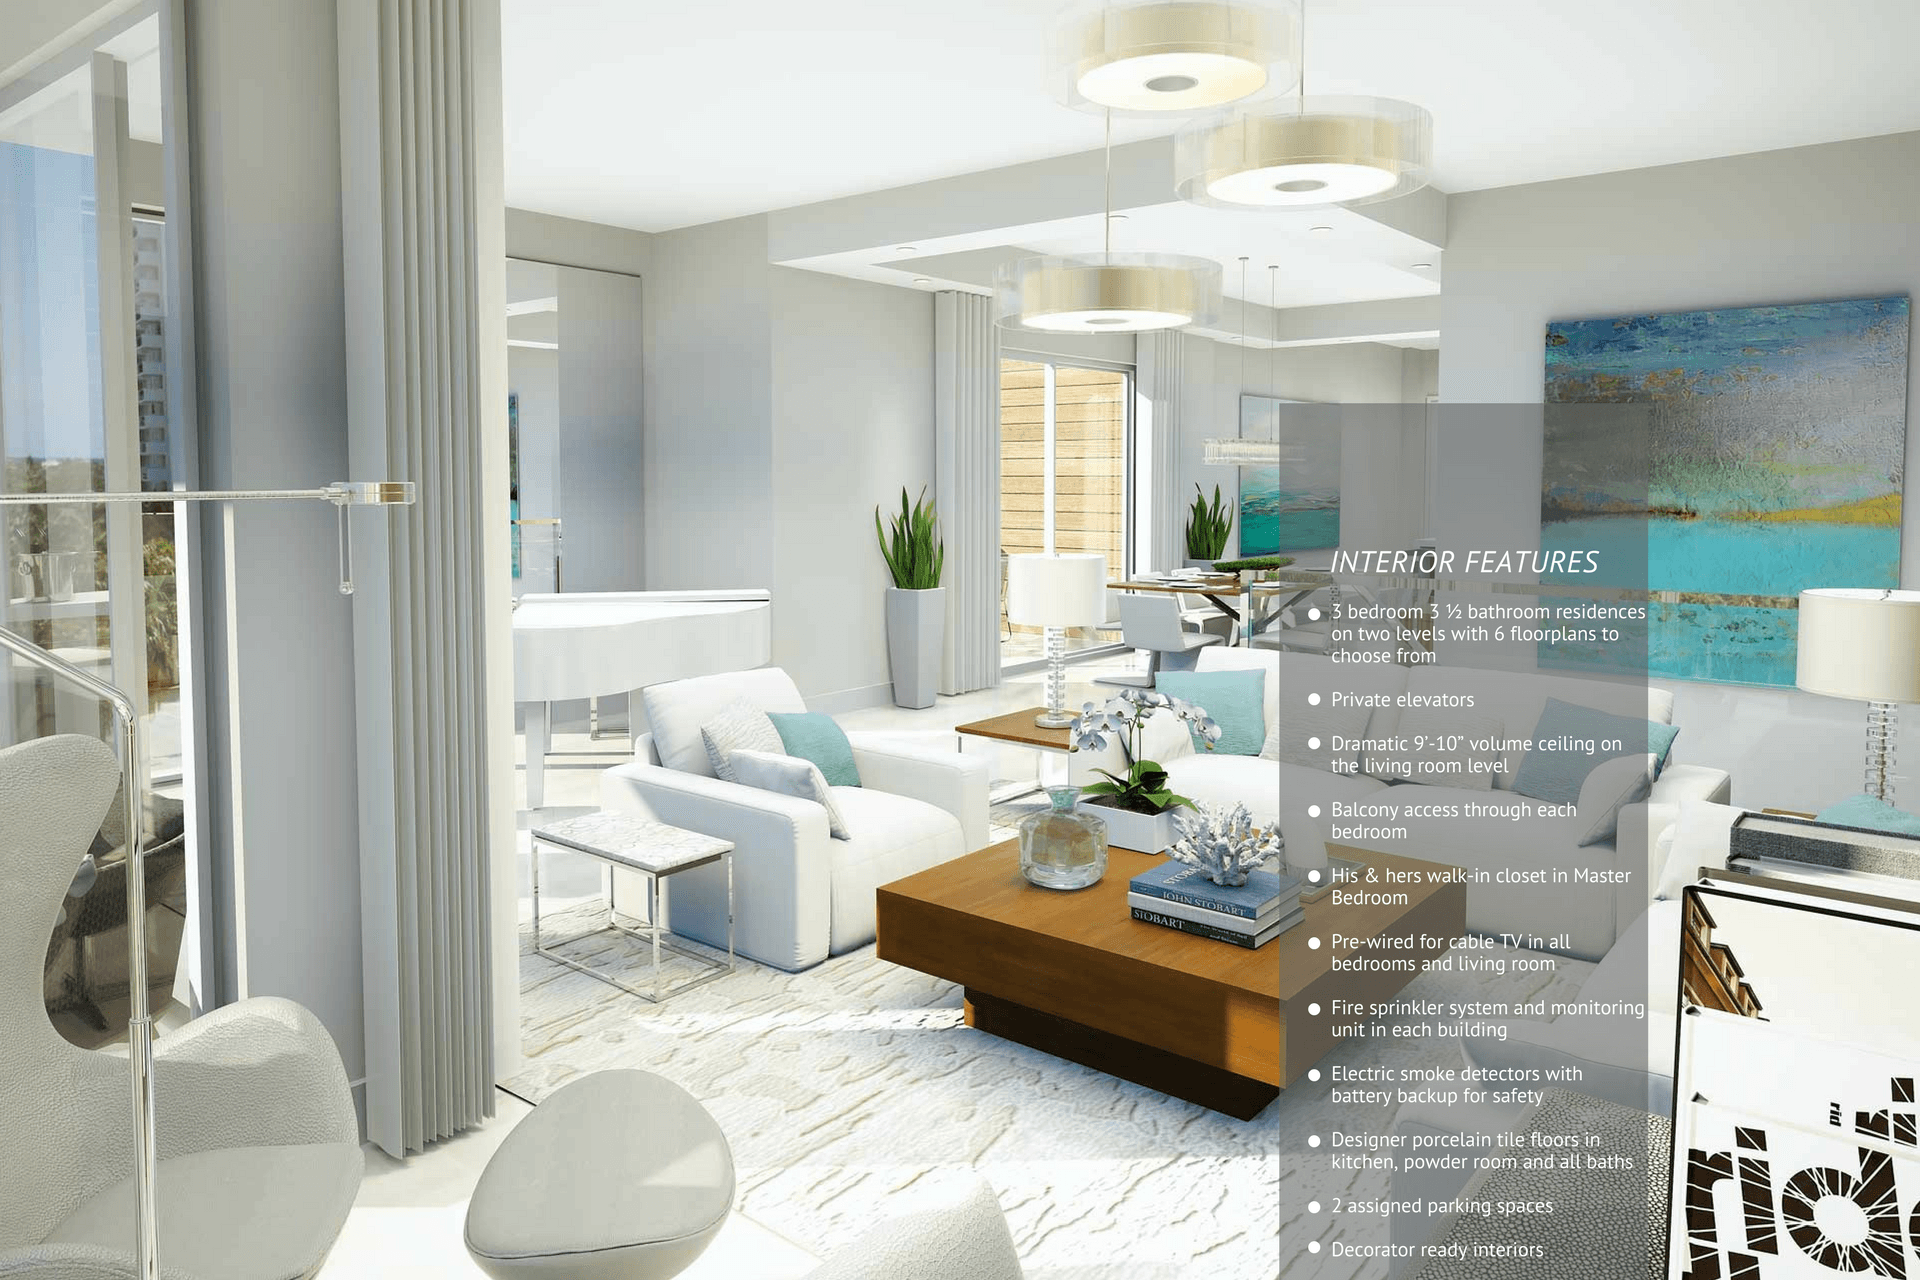 A complete list of 30 Thirty's luxury interior features and amenities